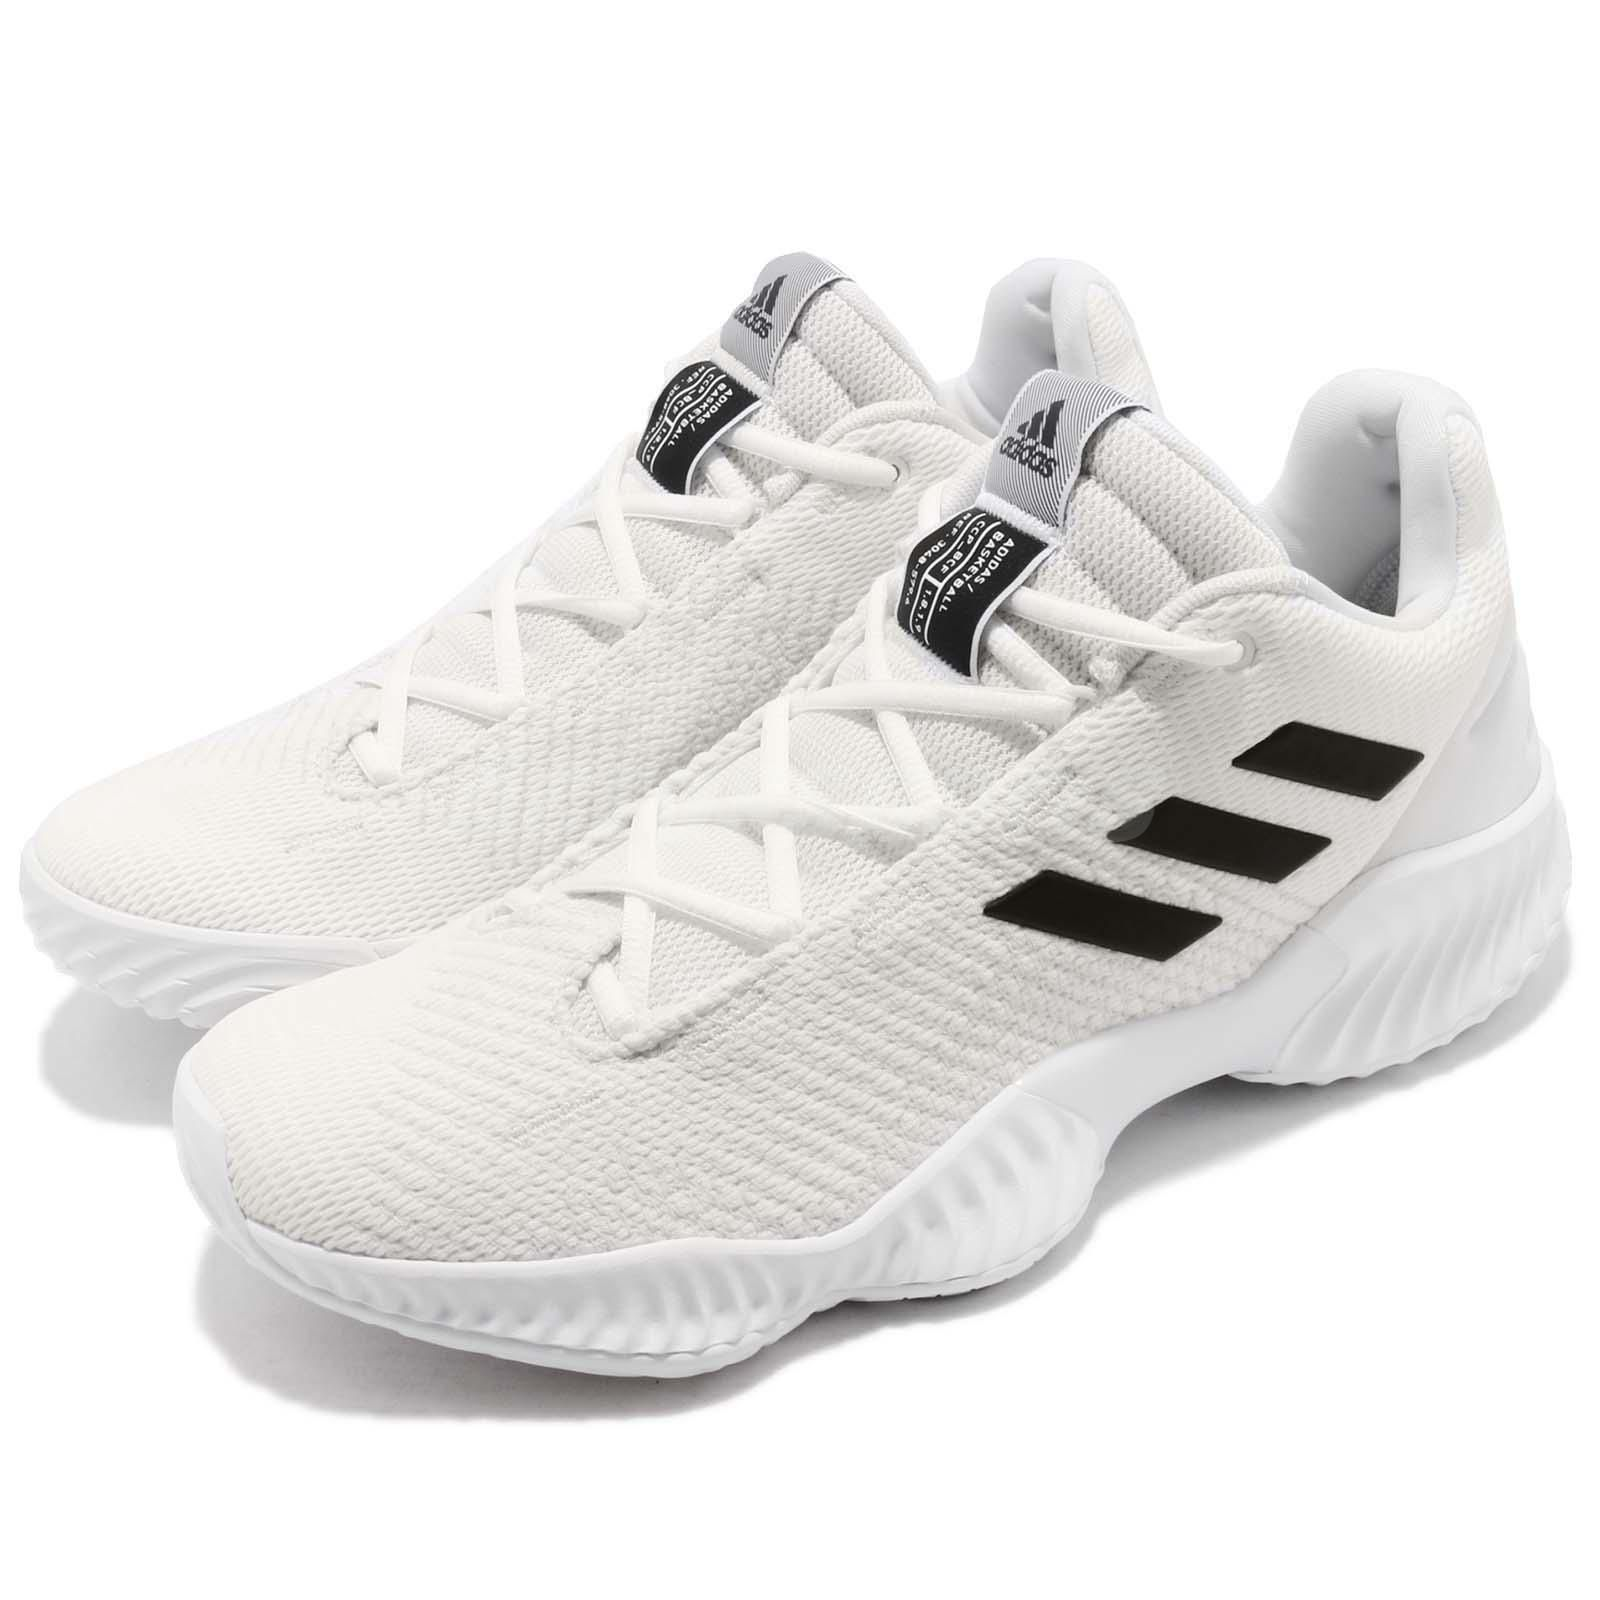 ed273c84b79f6  adidas Pro Bounce 2018 Low White Black  Men  Basketball Shoes  Sneakers  buy it now